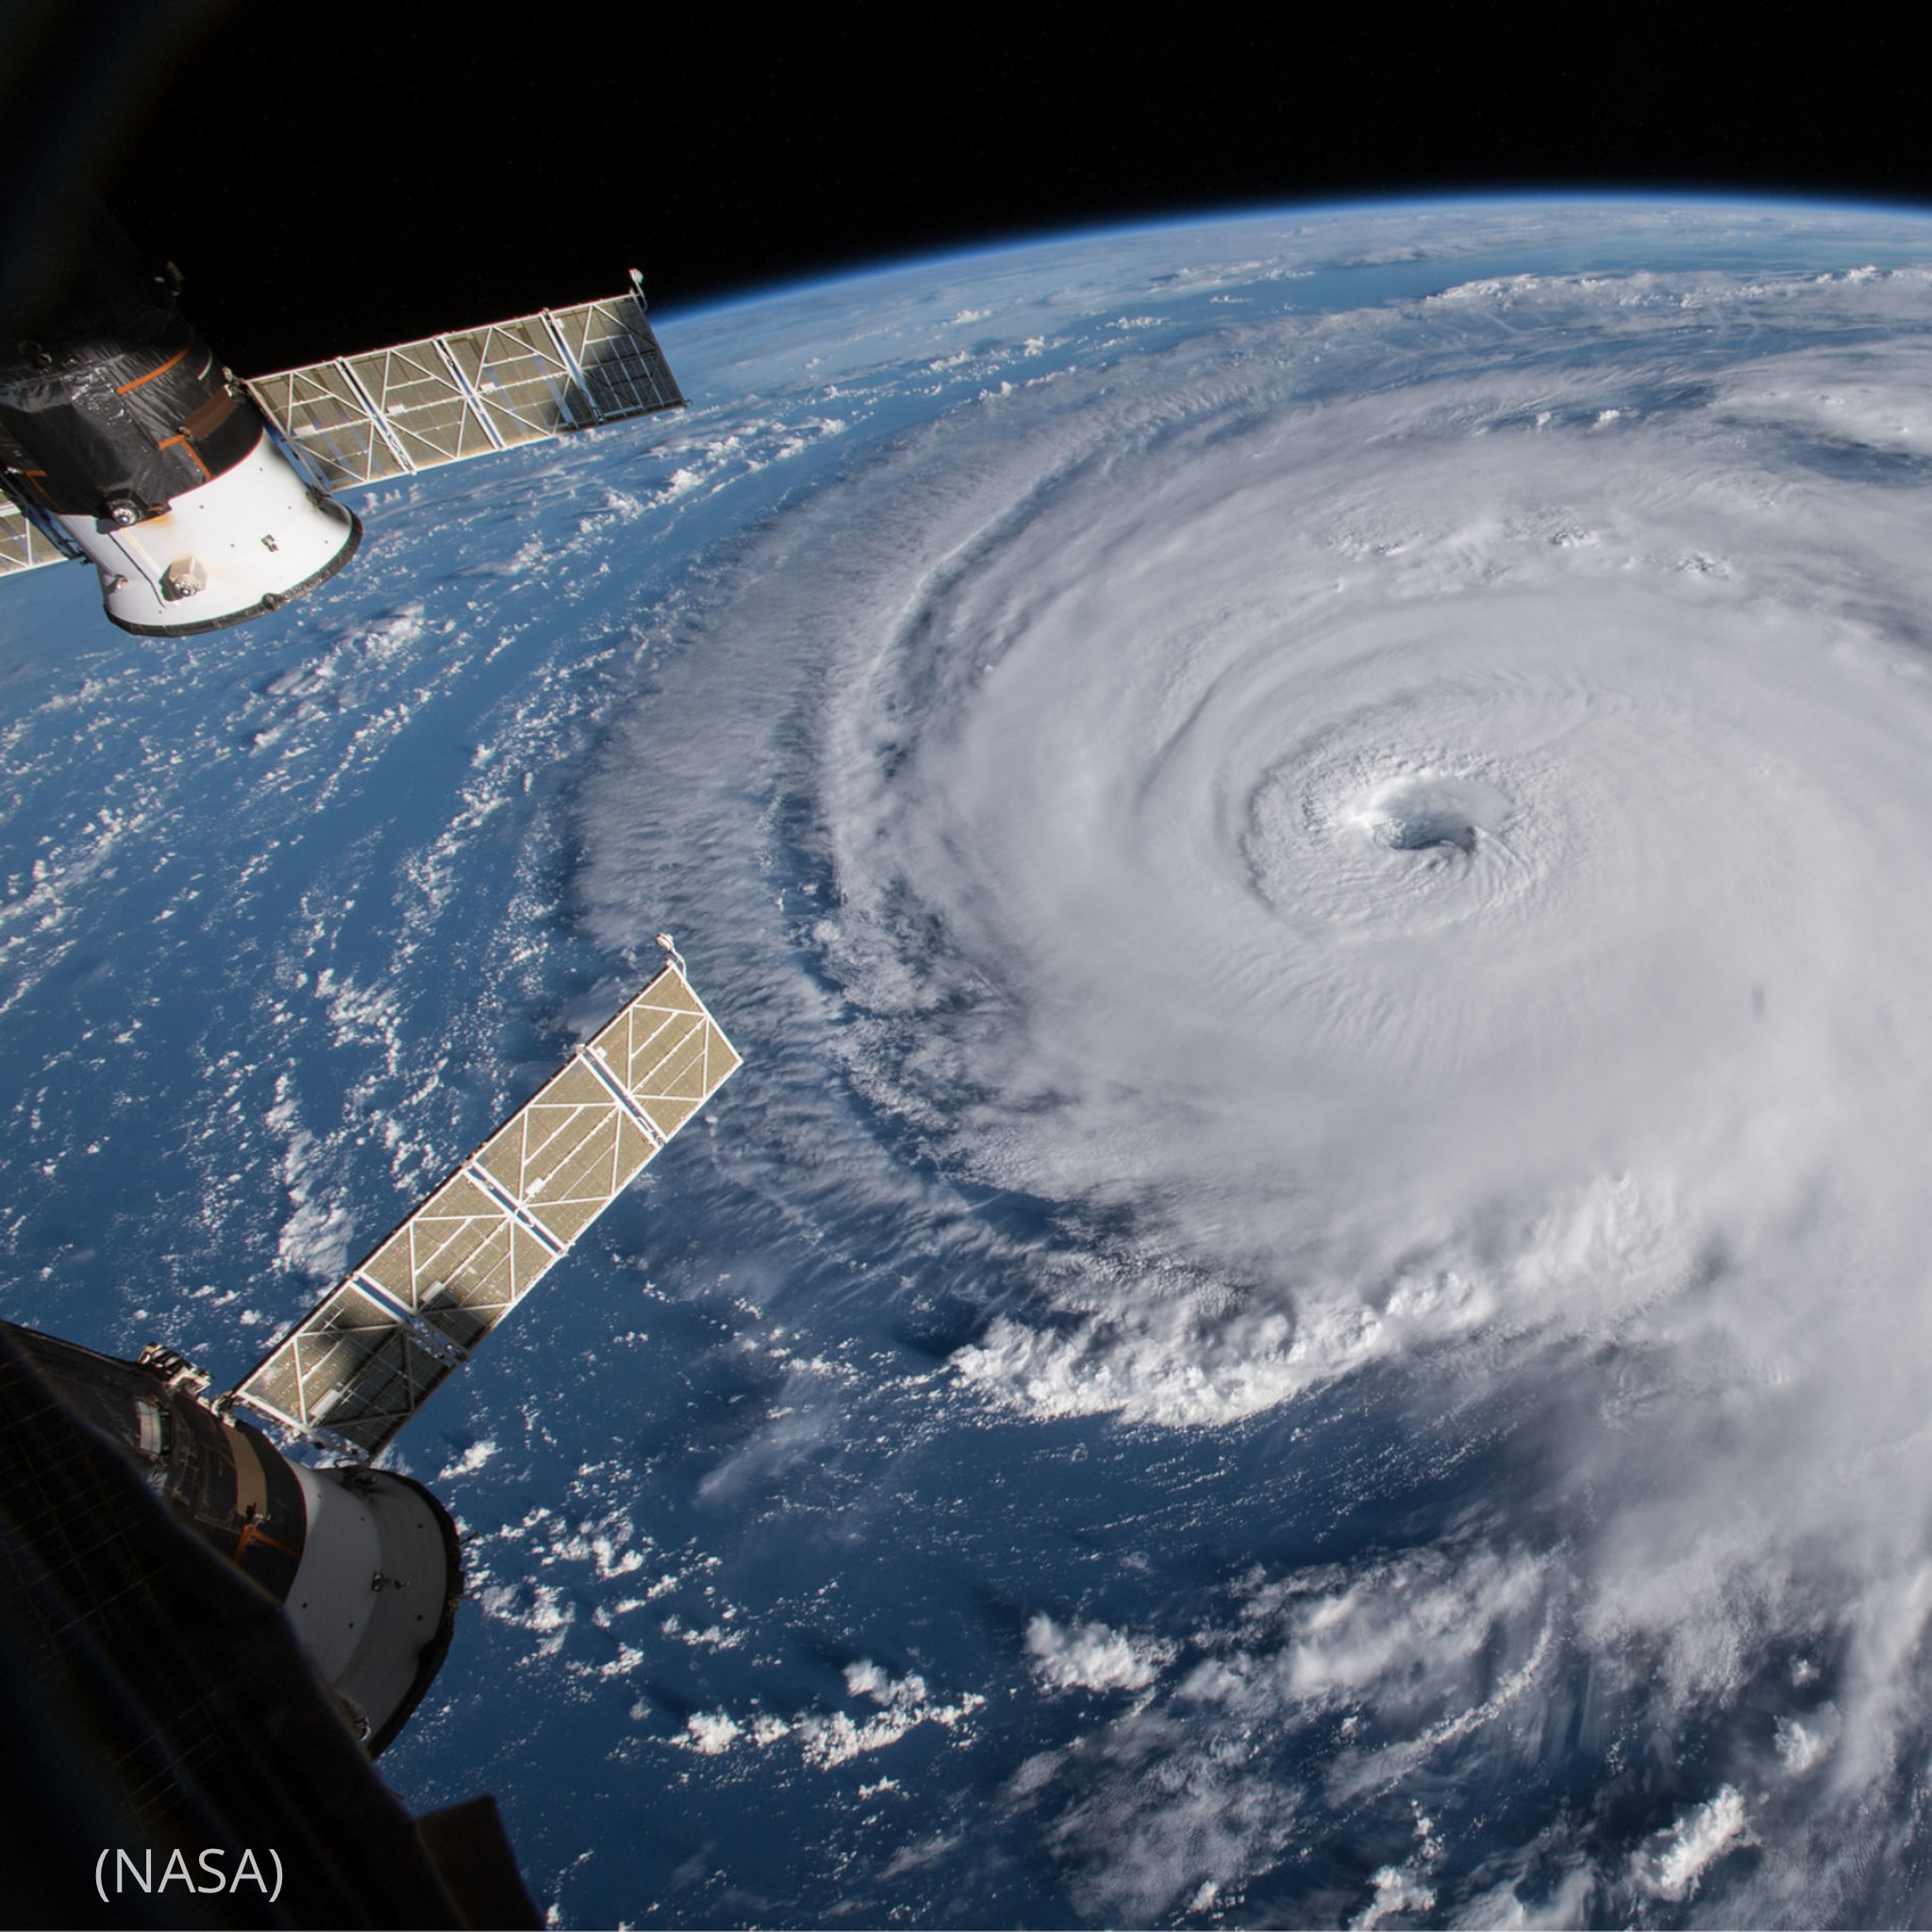 Satellites moving in space over hurricane (NASA)